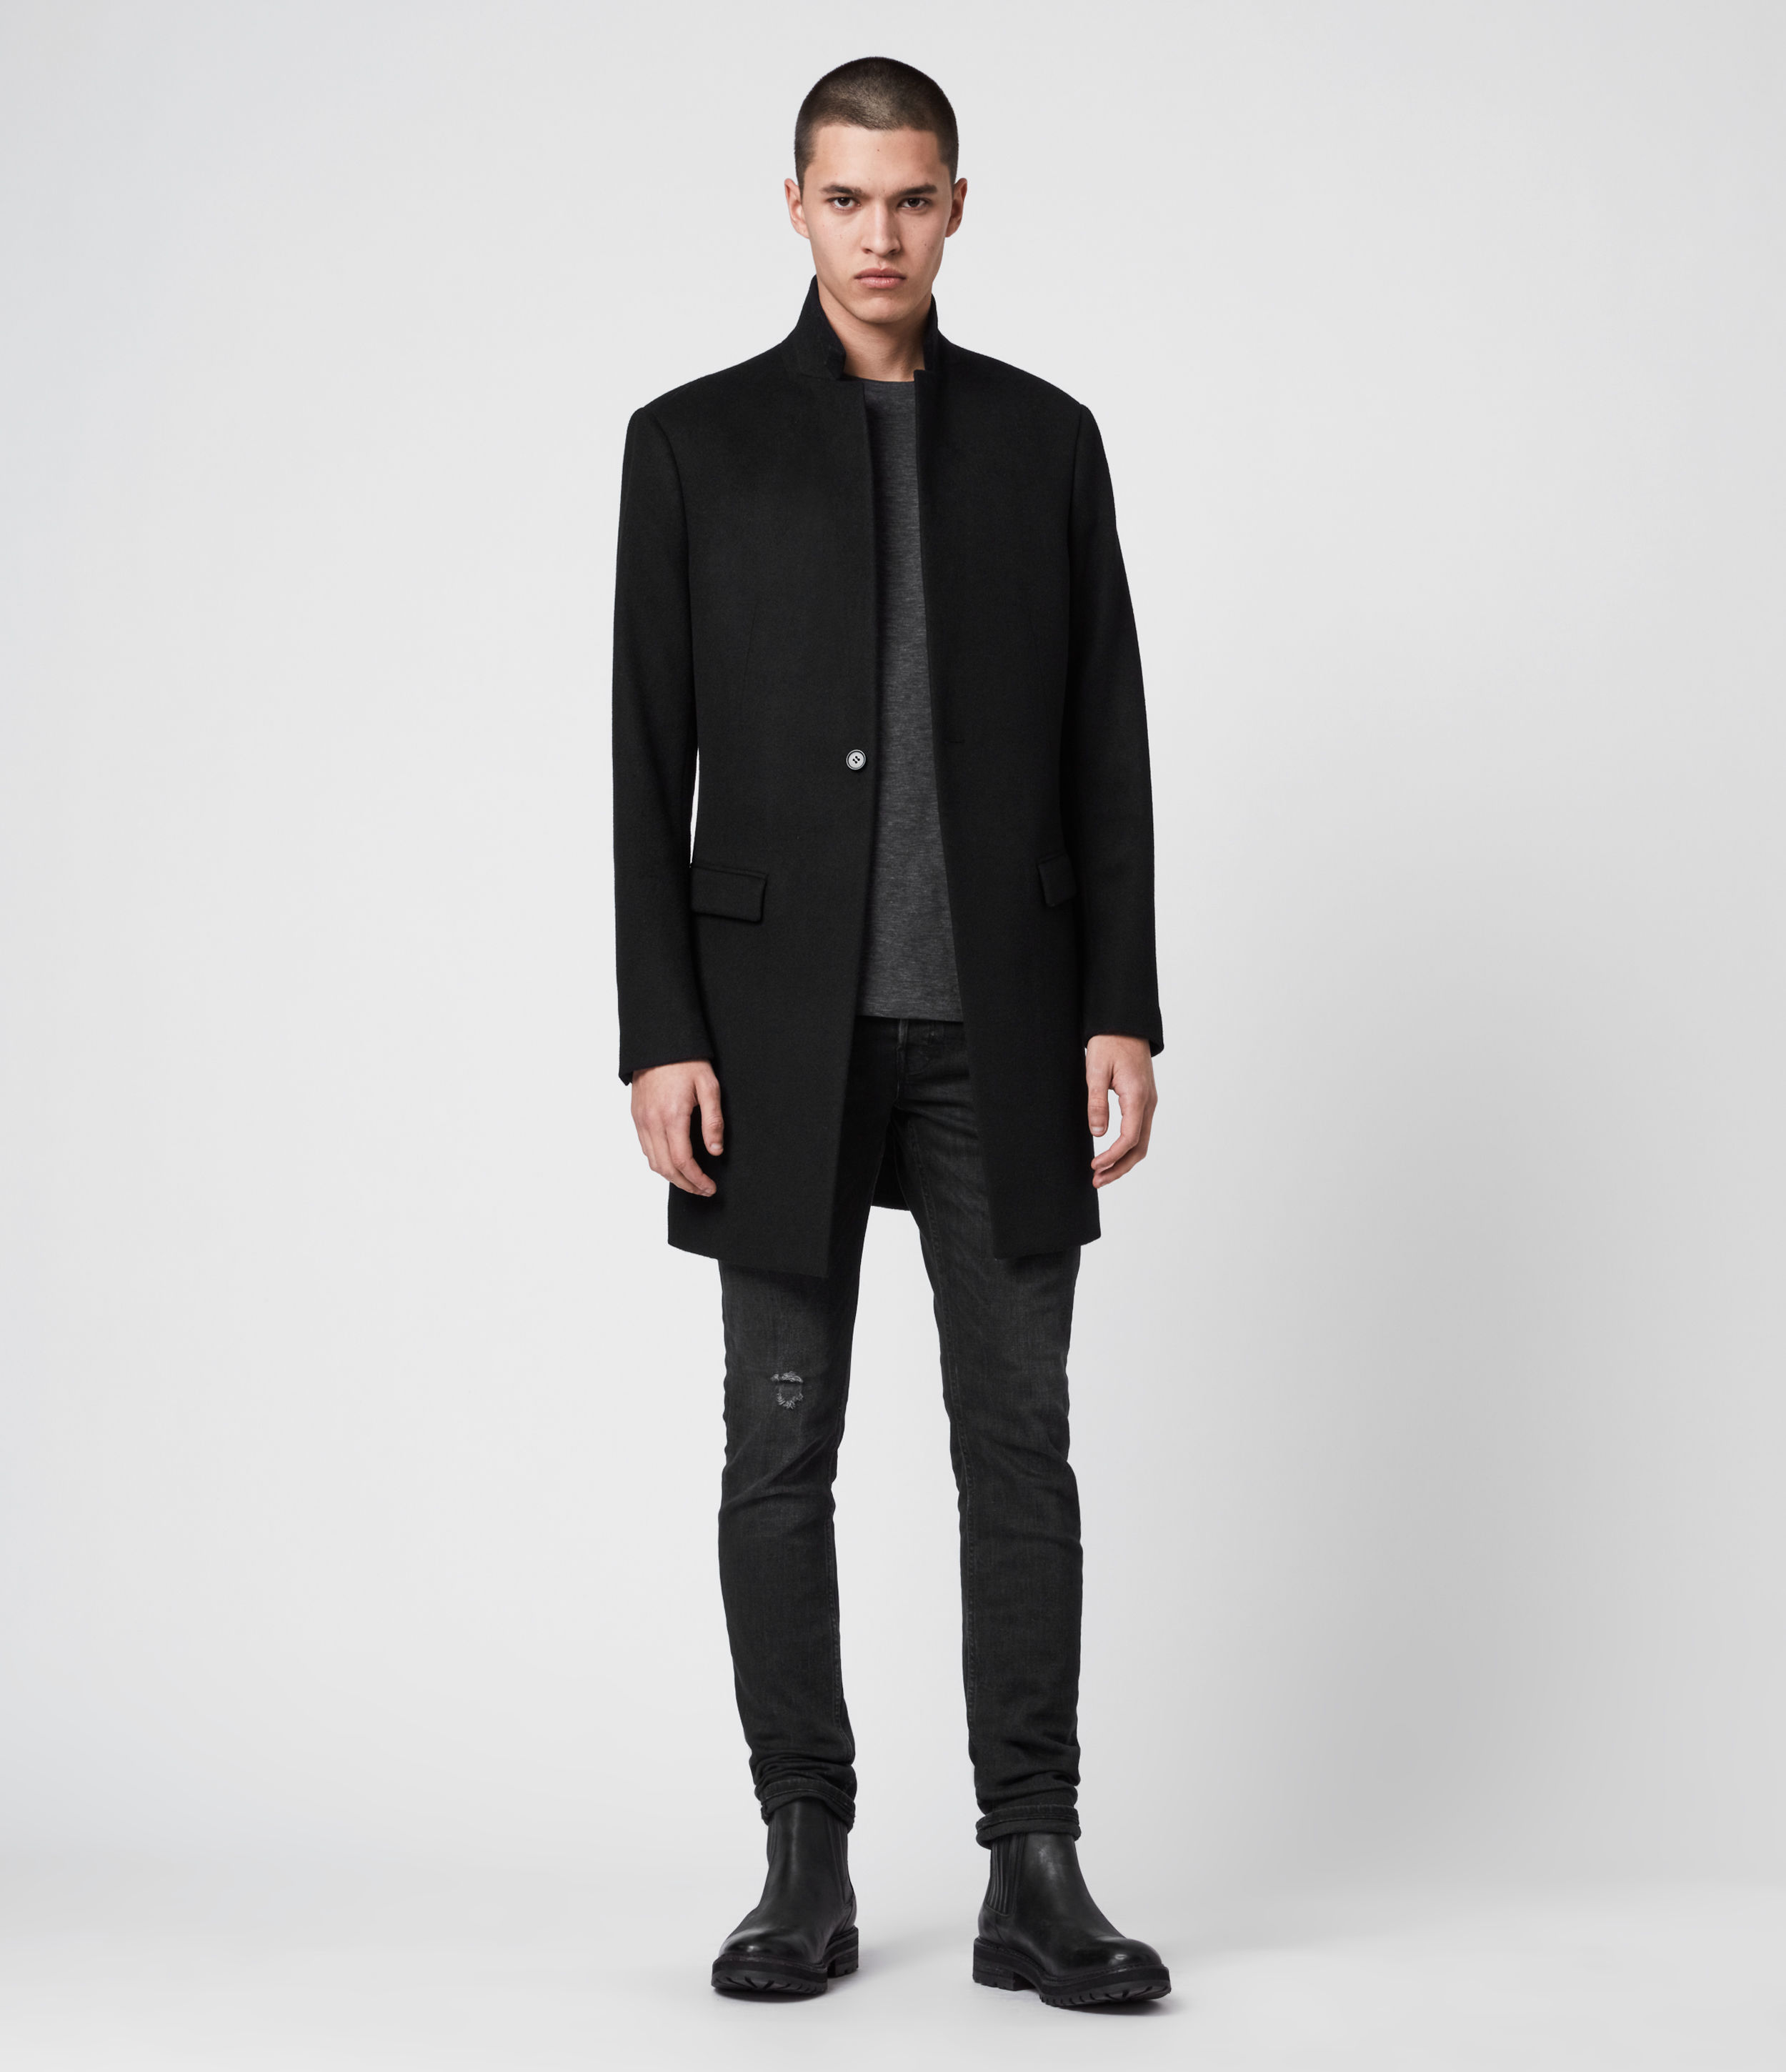 AllSaints Men's Wool Slim Fit Pure Classic Fully Lined Bodell Single Button Coat, Black, Size: 44